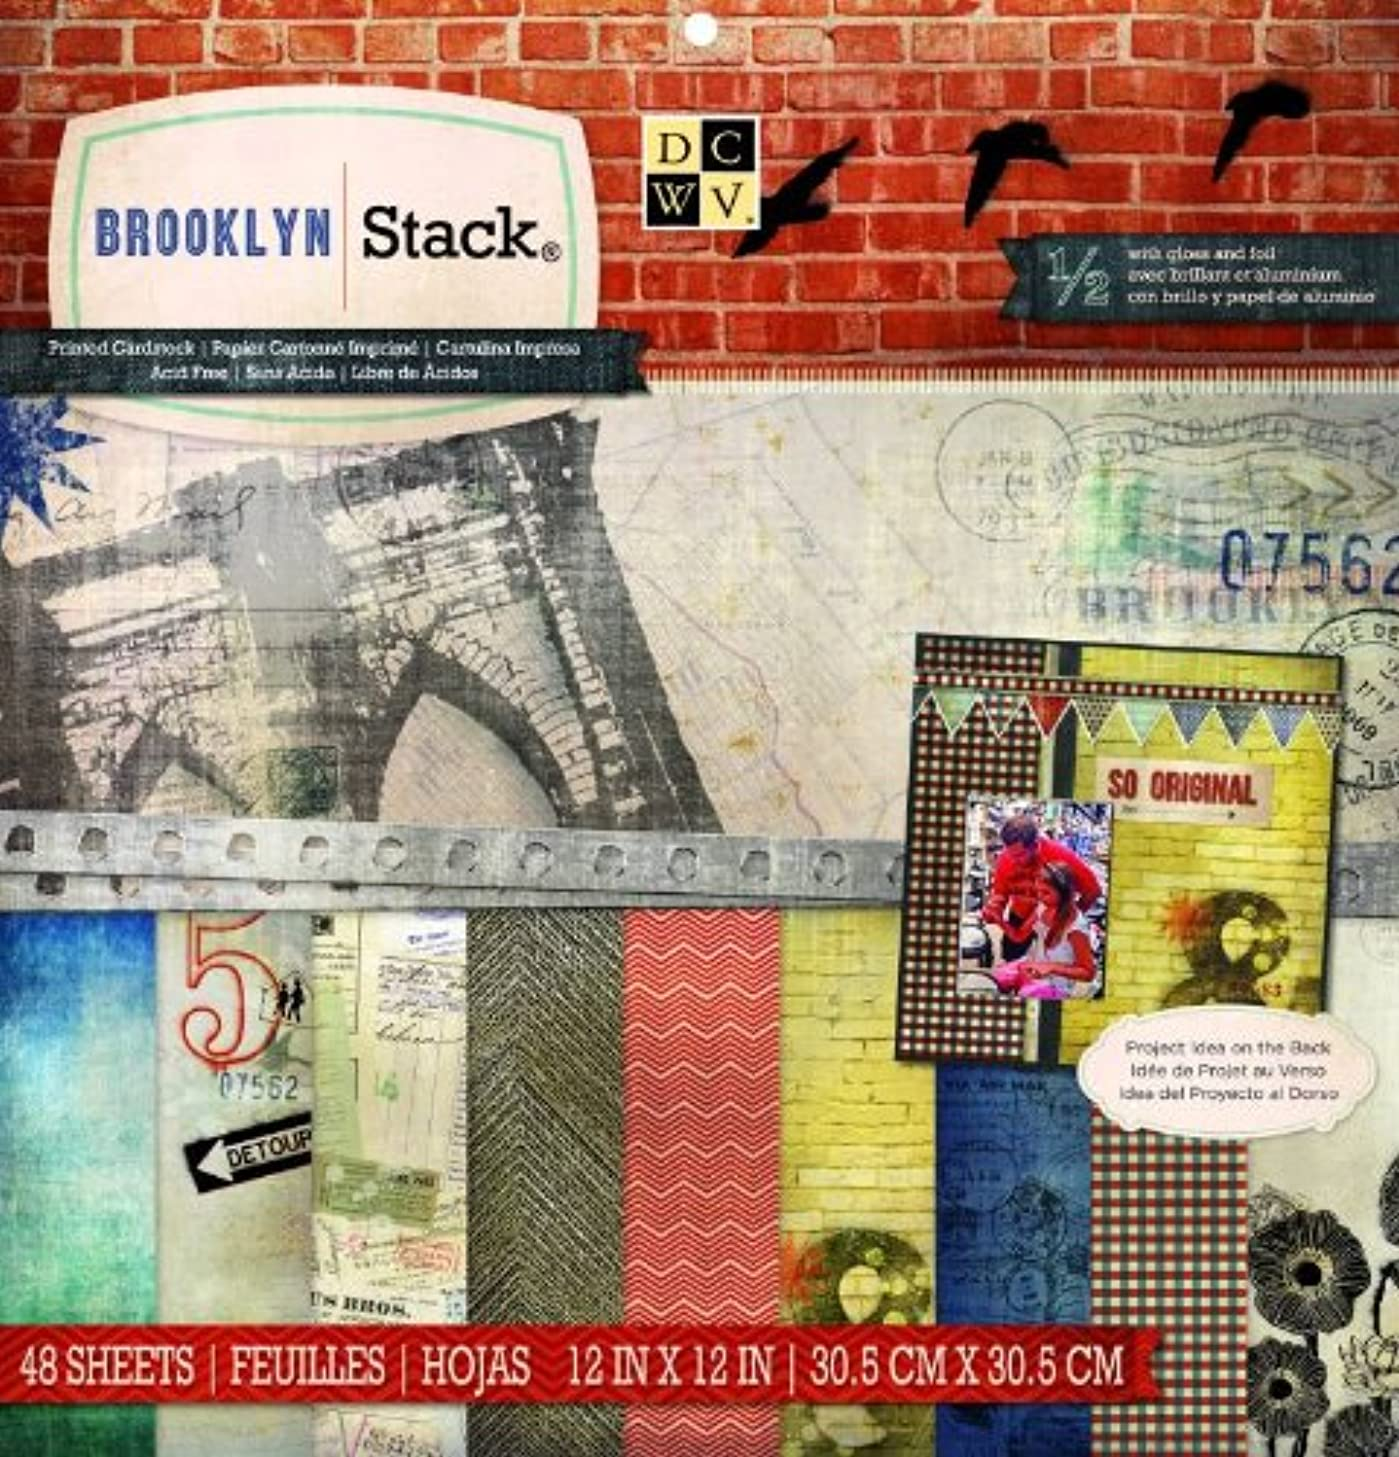 DCWV Brooklyn Stack, 12 by 12-inches